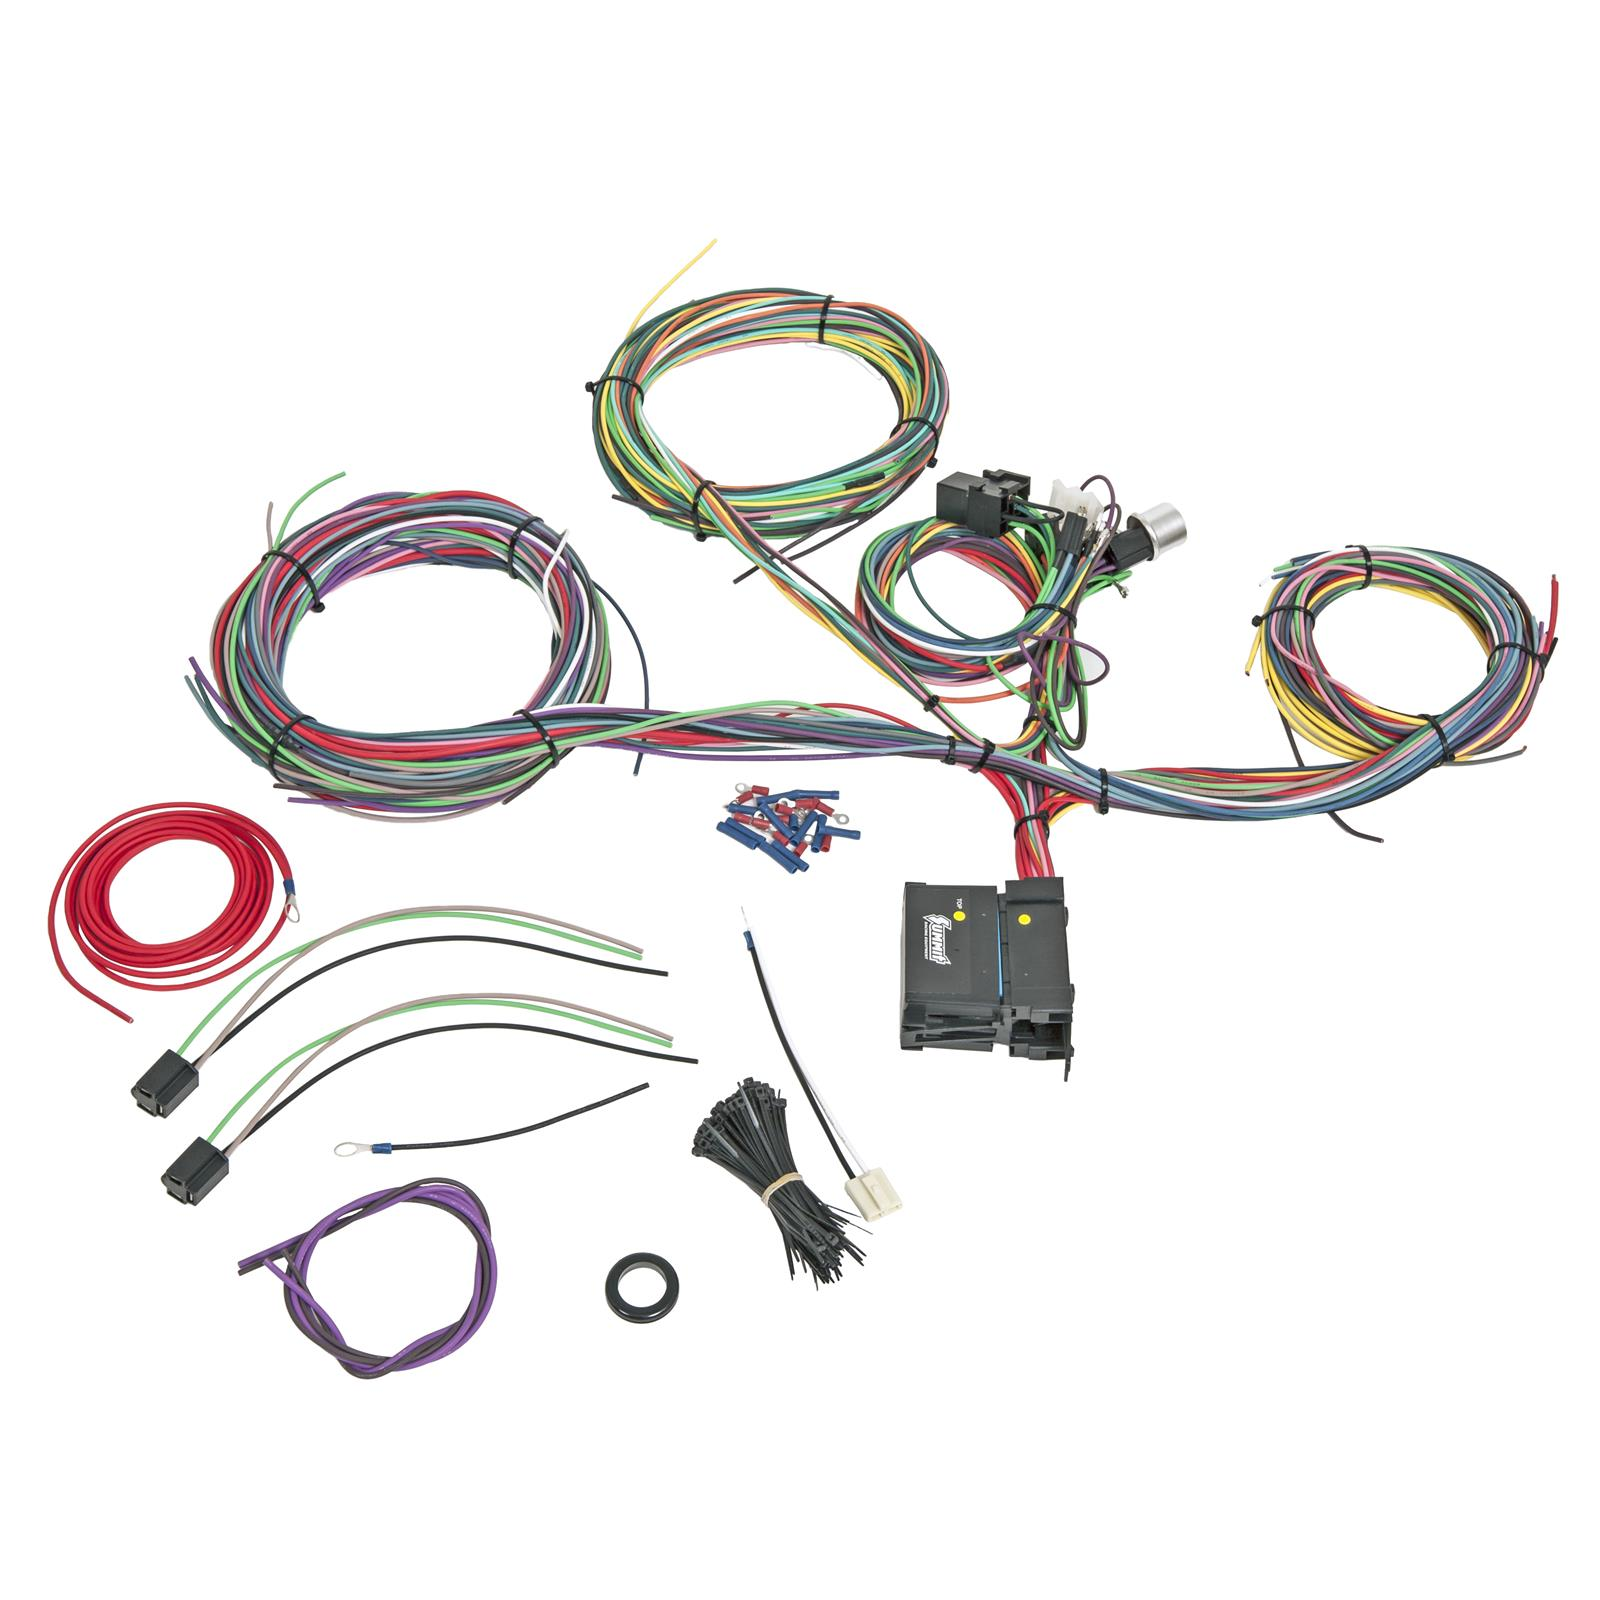 sum 890021_xl summit racing� 18 circuit universal wiring harnesses sum 890021 packard wiring harness at fashall.co